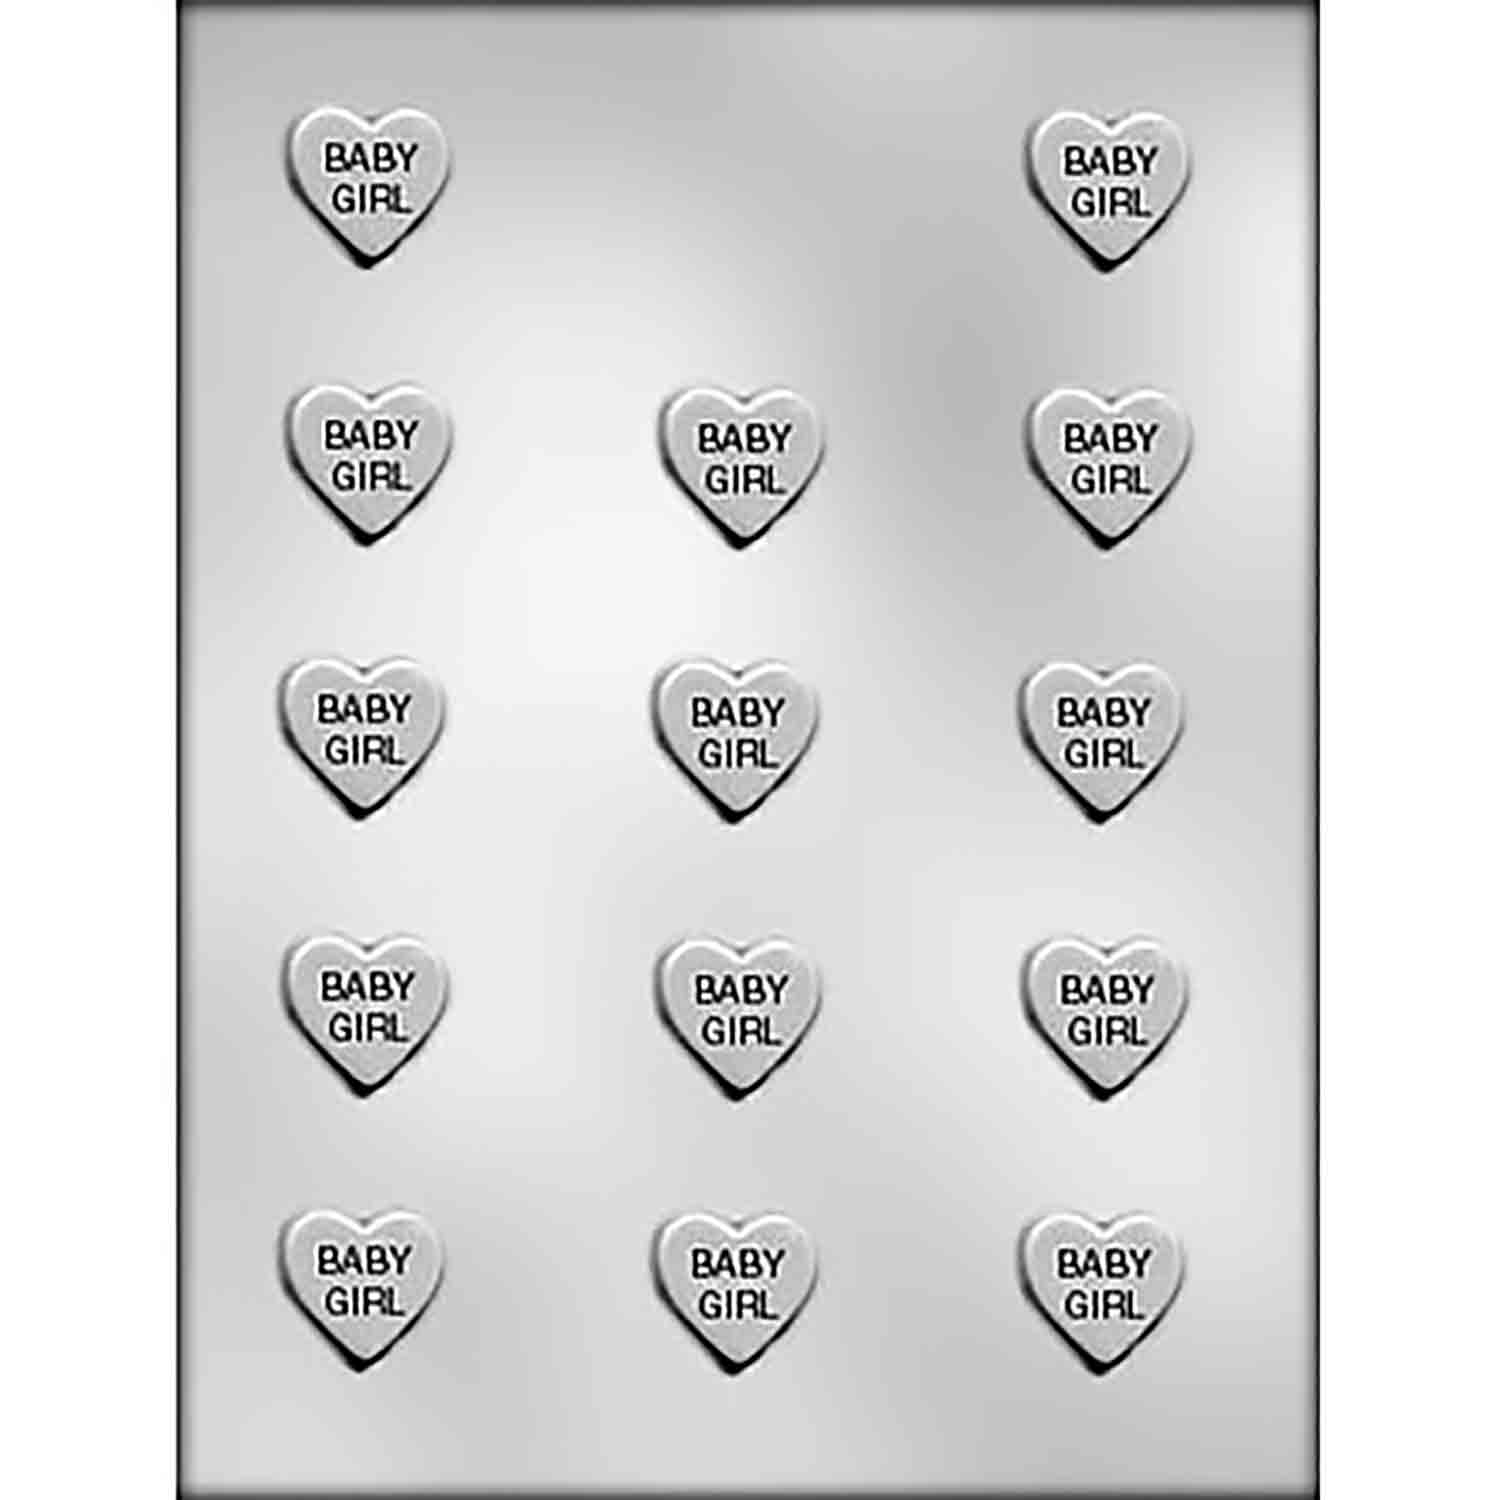 """BABY GIRL"" on Heart Chocolate Candy Mold"